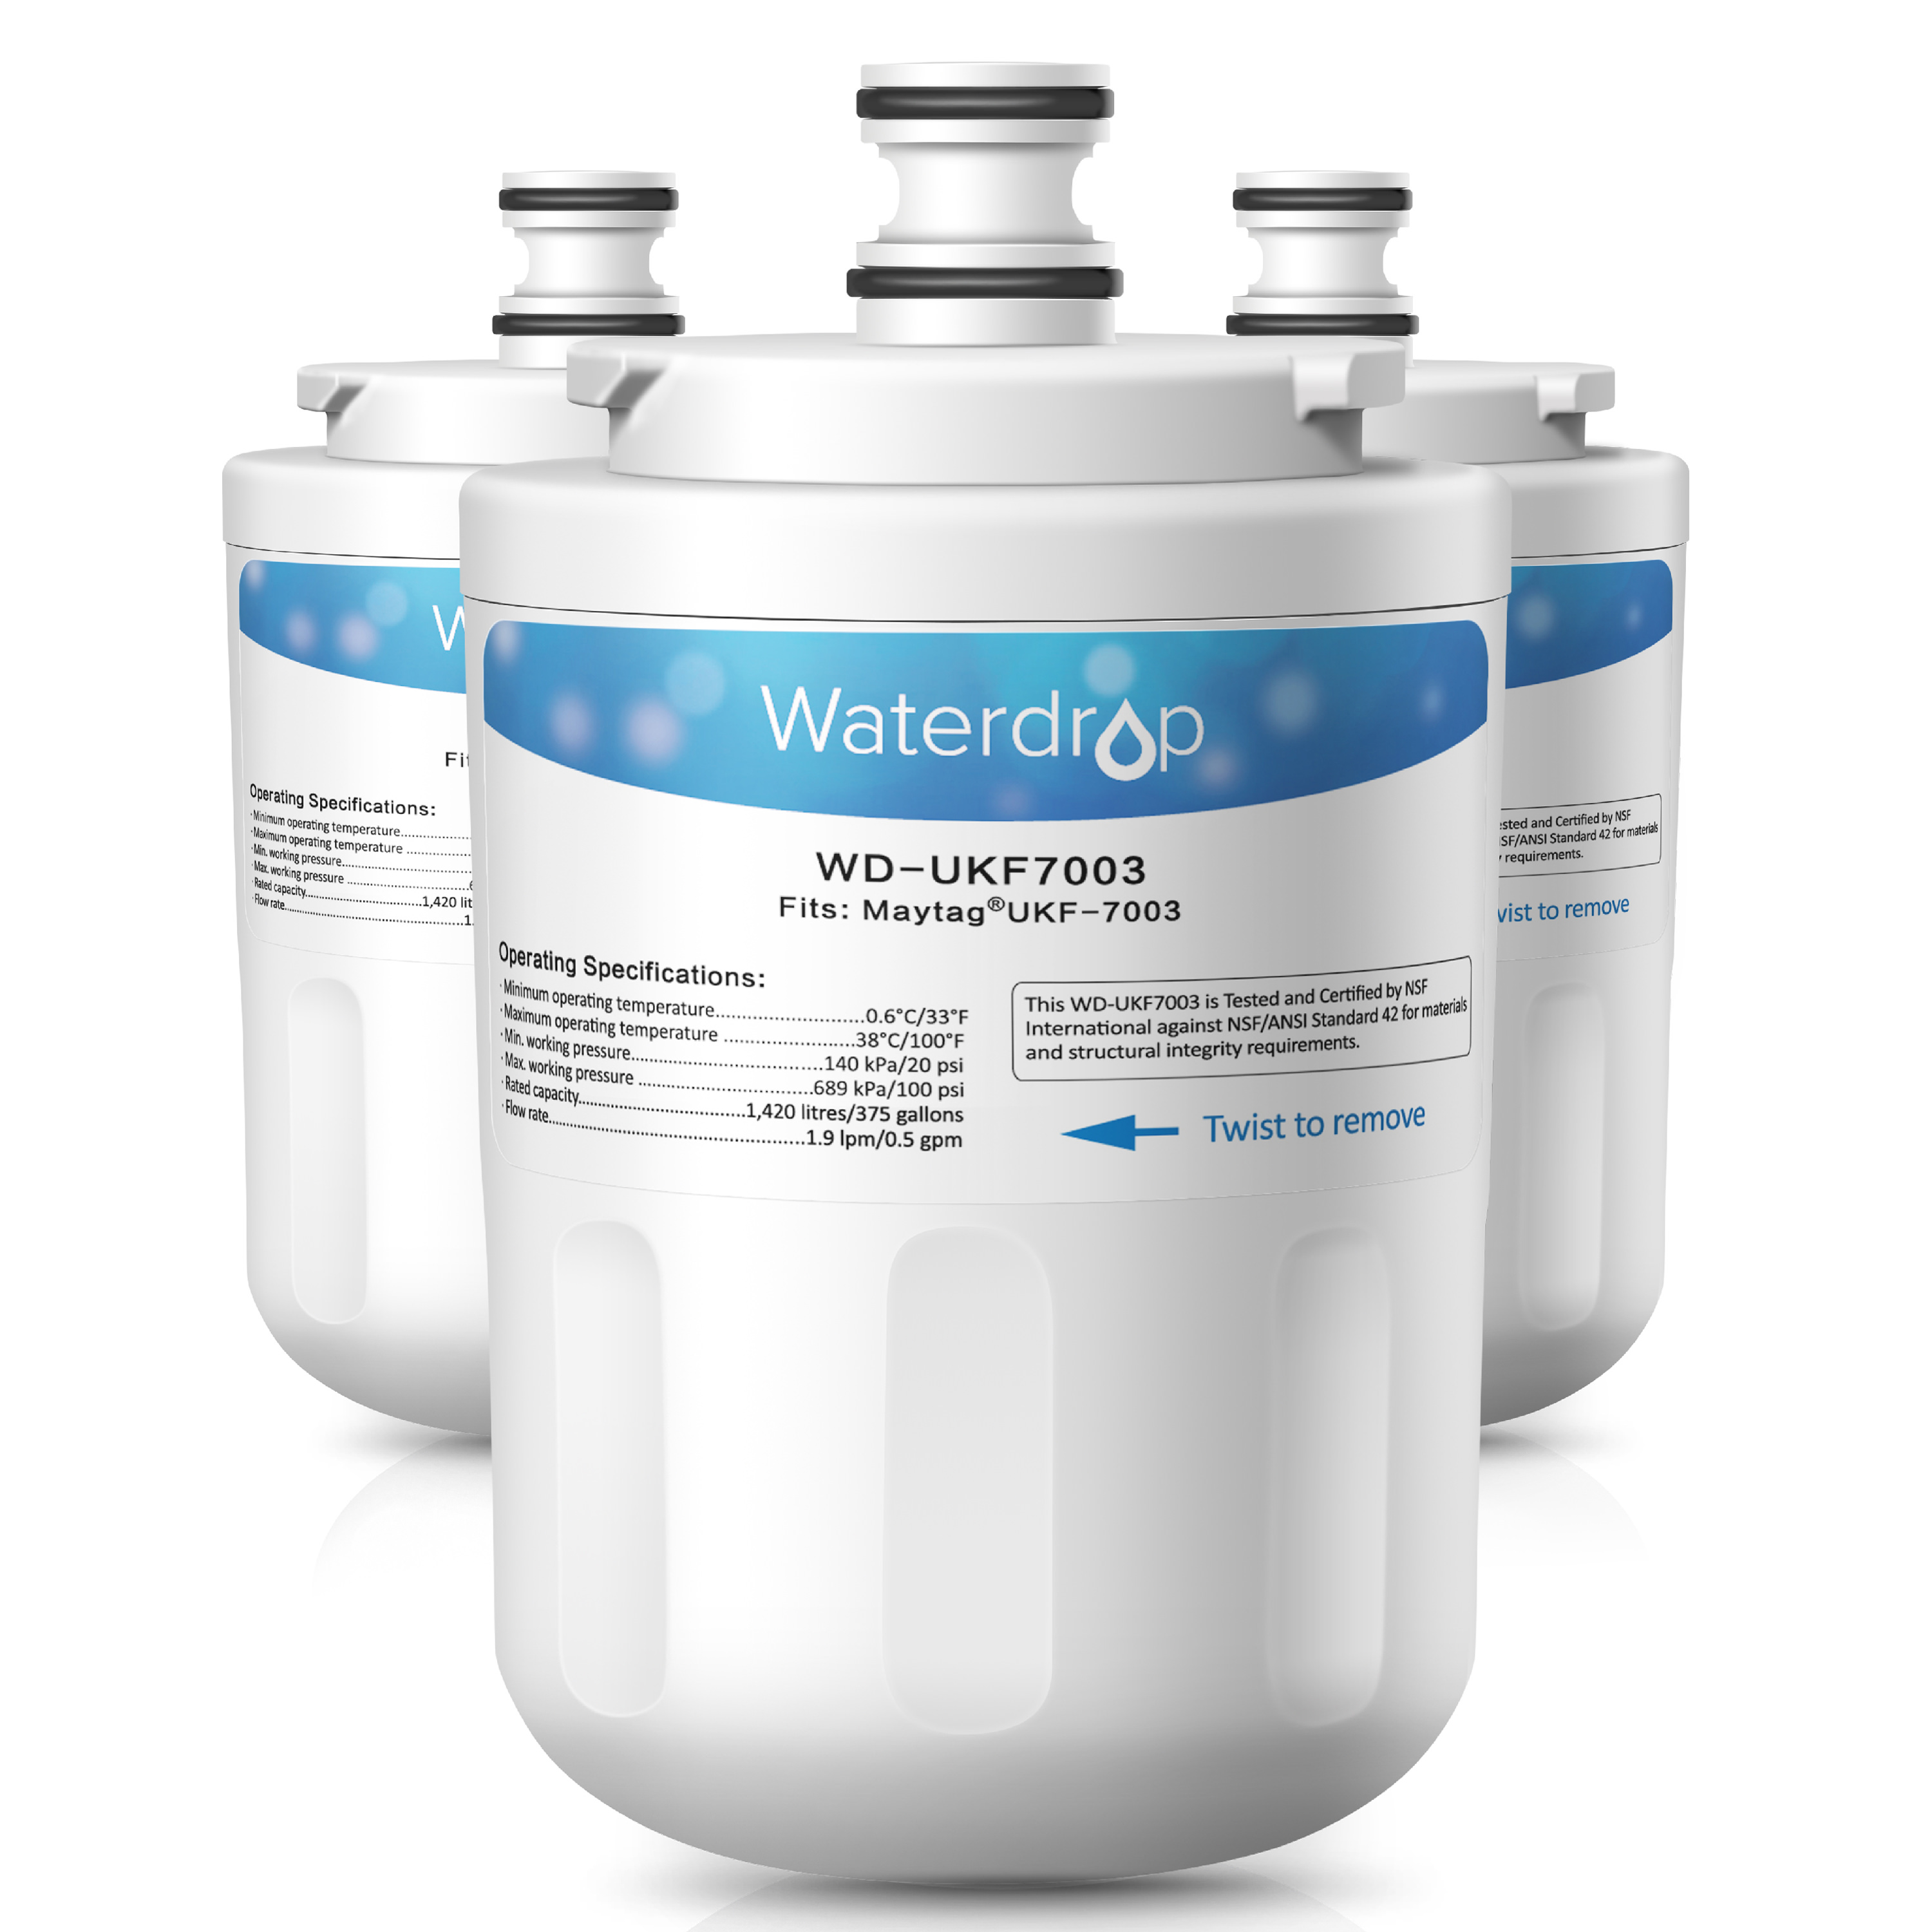 3 Pack Waterdrop UKF7003 Replacement for Maytag UKF7003, Whirlpool EDR7D1 Refrigerator Water Filter Replacement